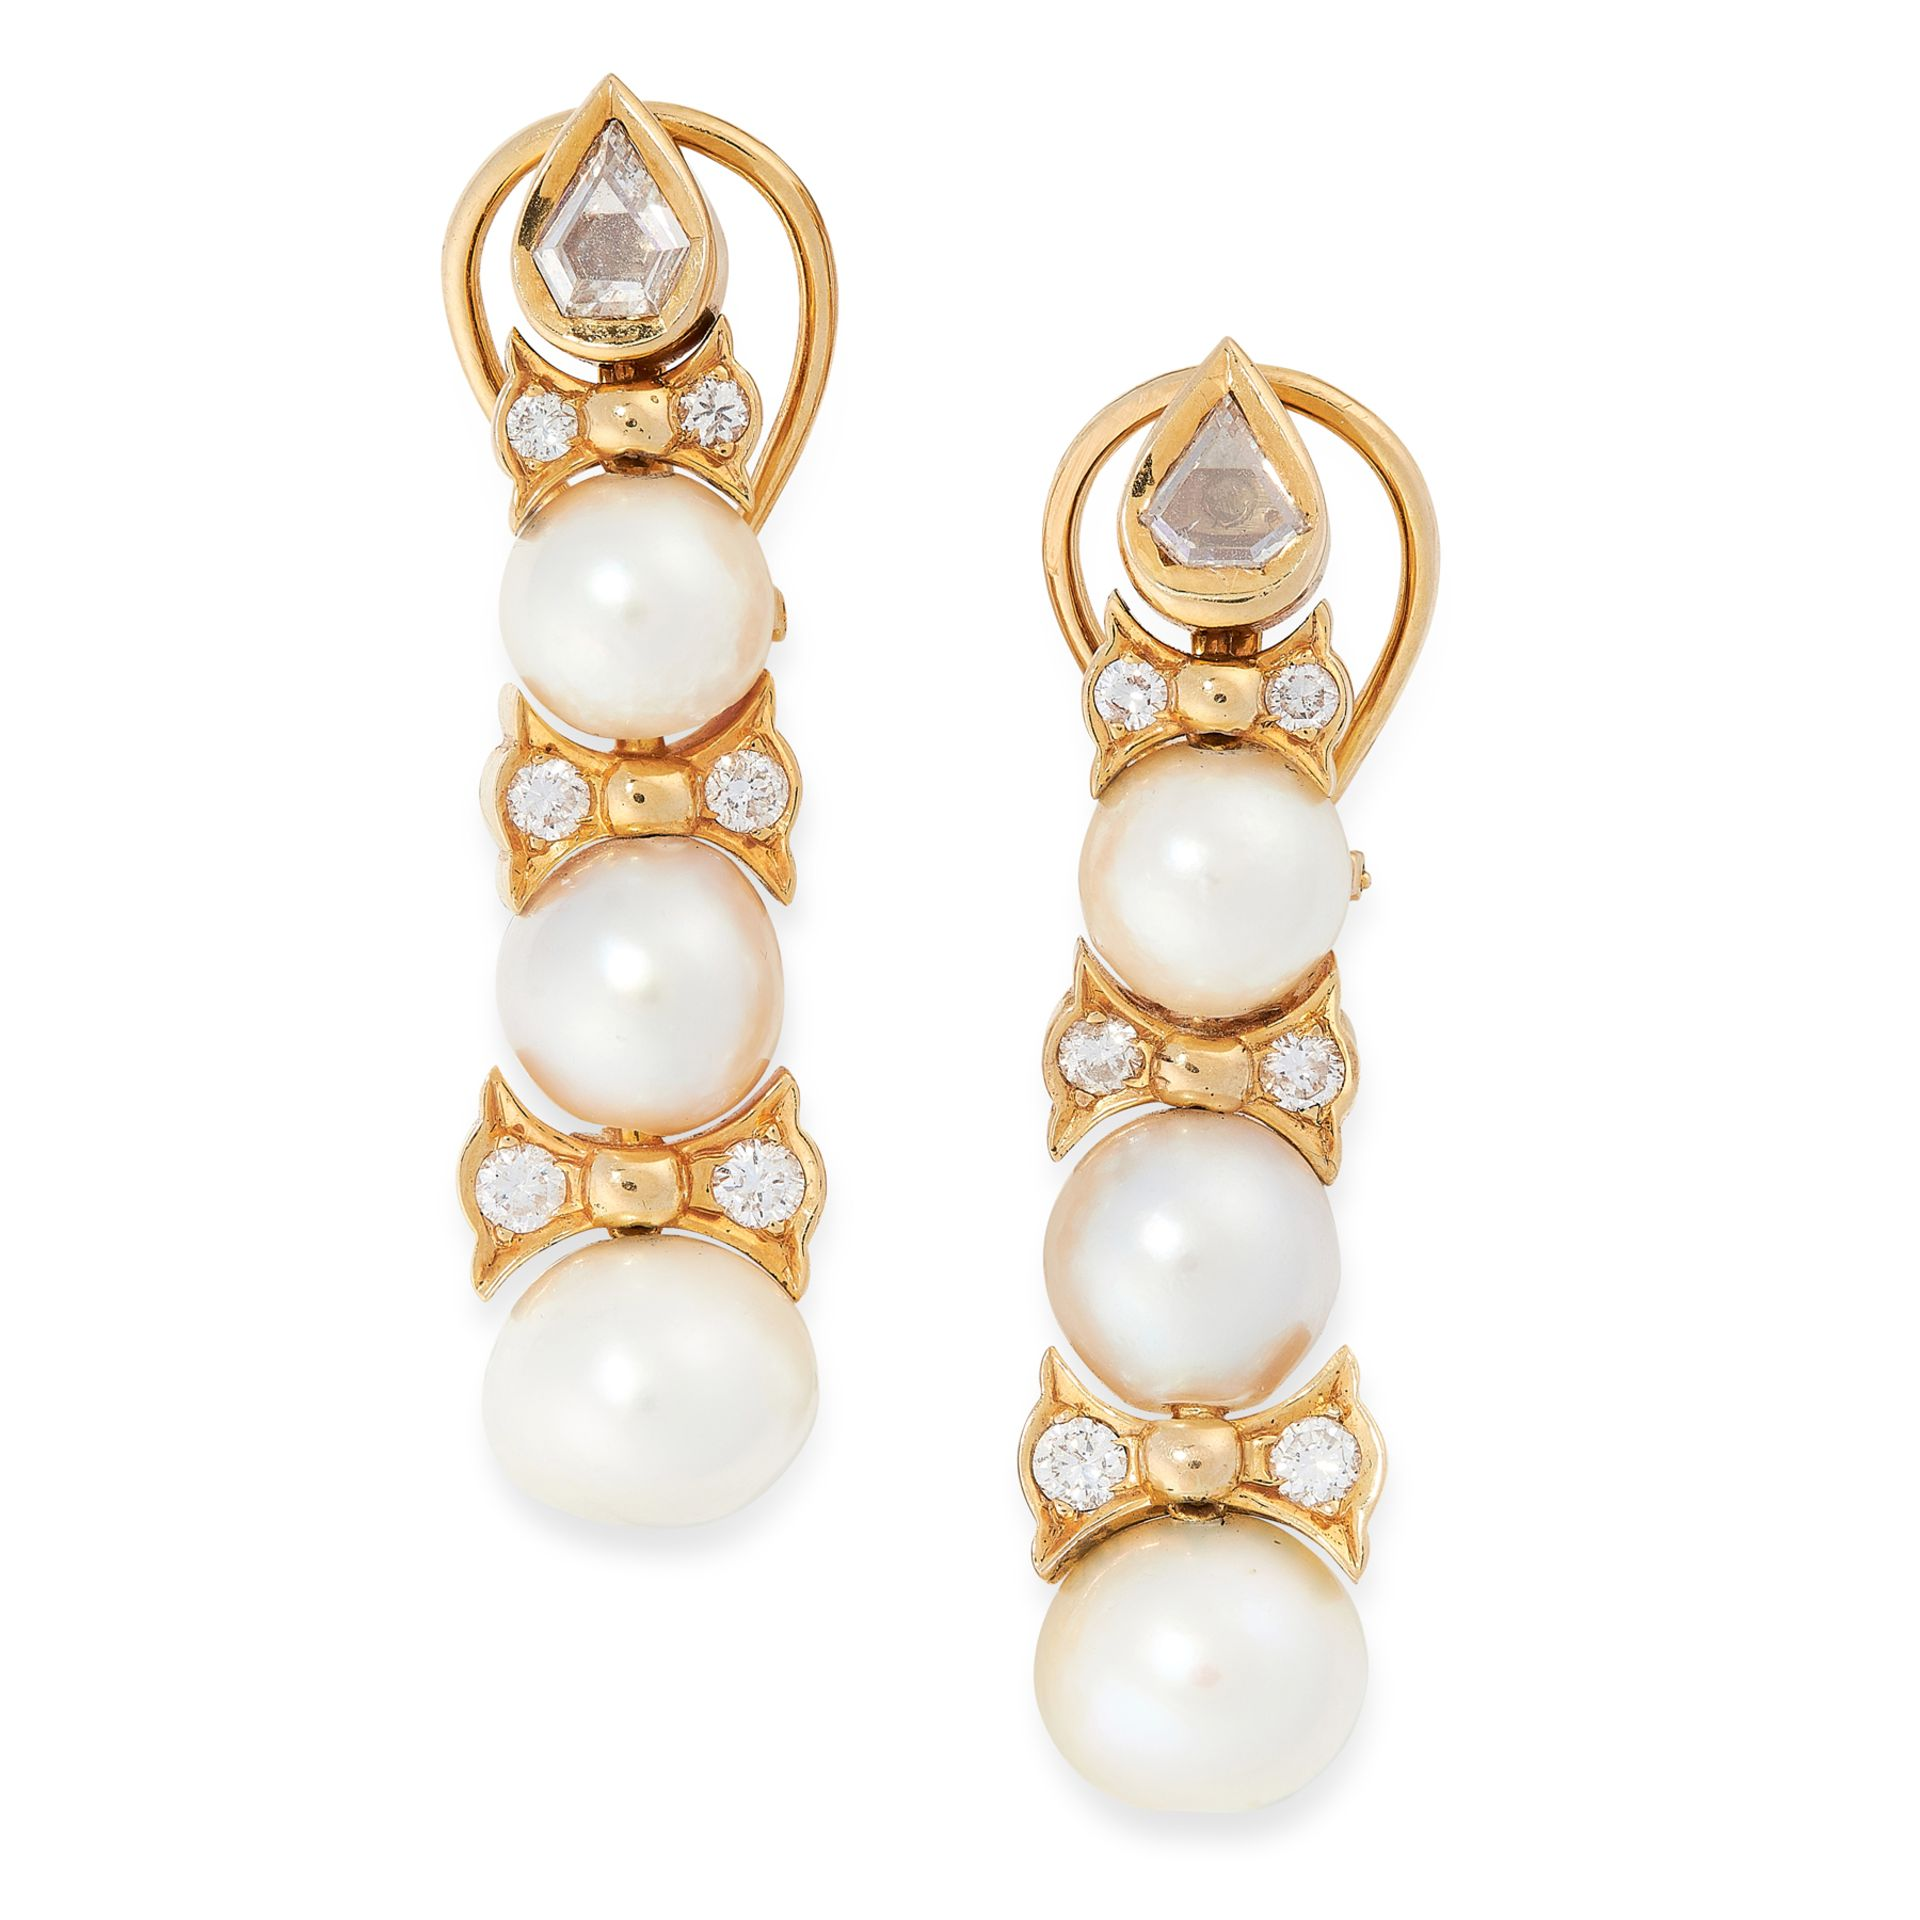 A PAIR OF VINTAGE PEARL AND DIAMOND EARRINGS in 18ct yellow gold, each formed of a trio of graduated